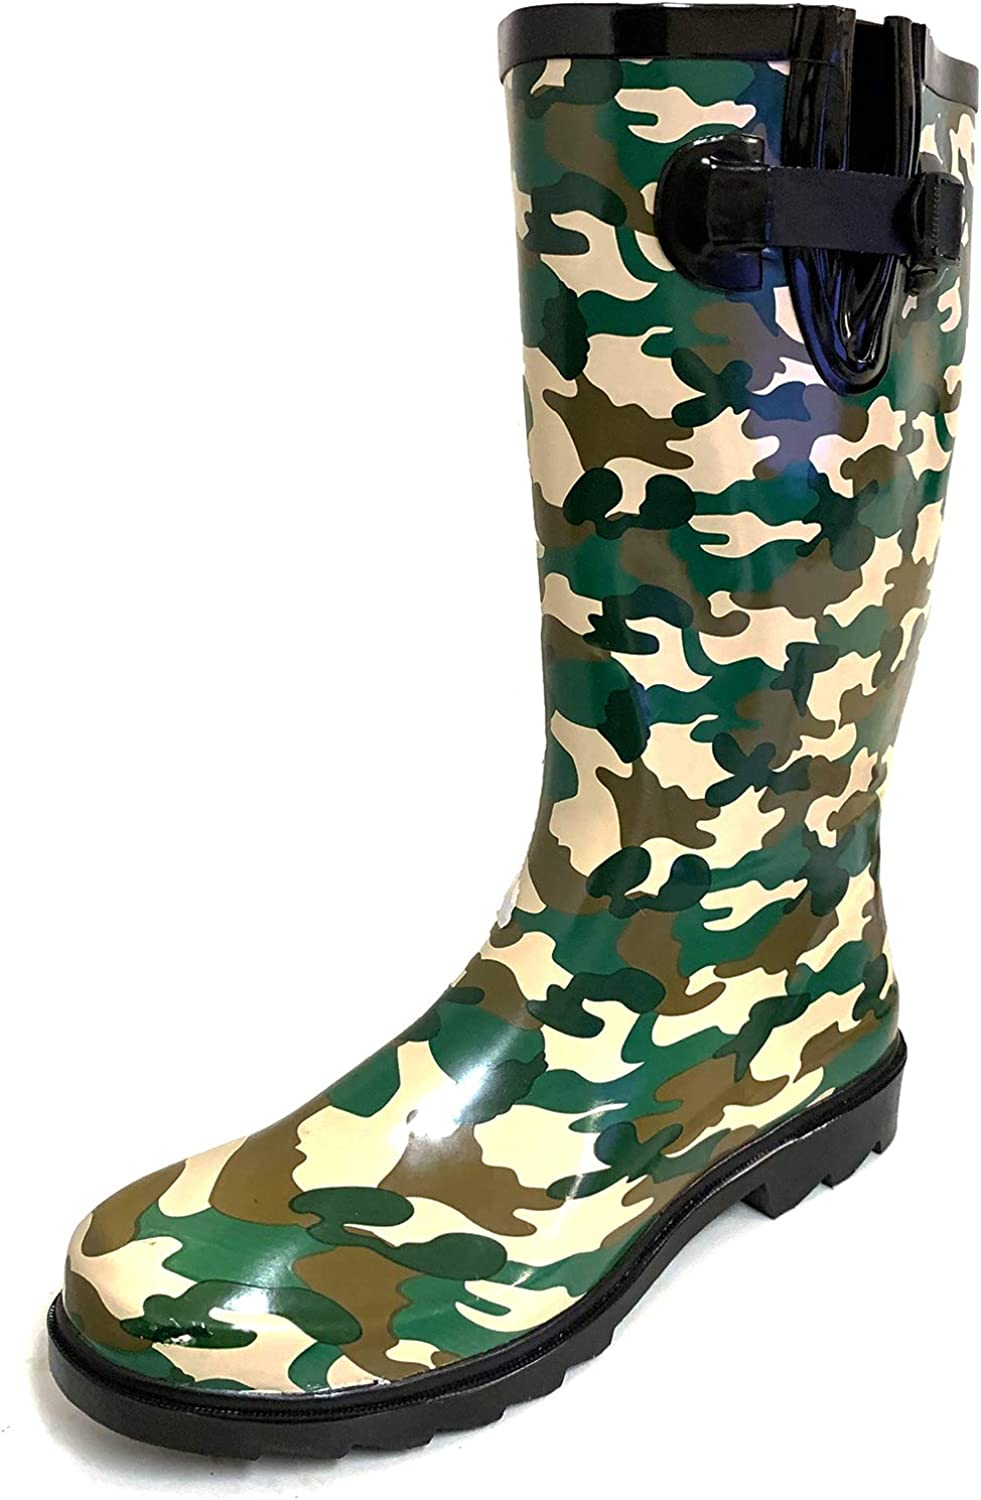 G4U Women's Rain Boots Special price Multiple Ranking TOP4 Styles Wellies Mid Calf Bu Color